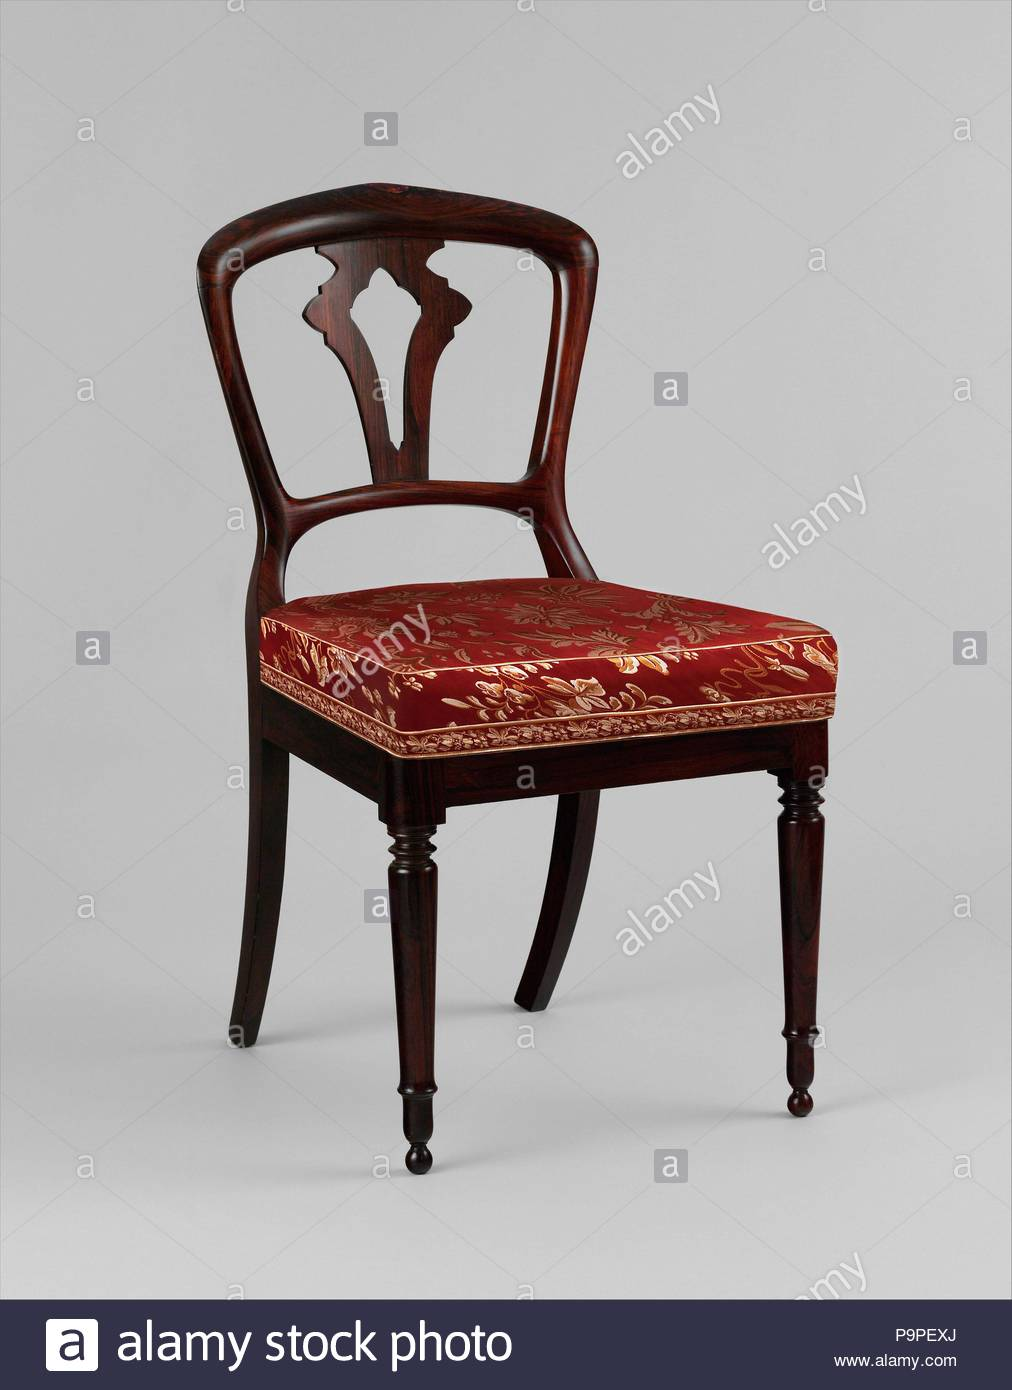 Side Chair 1841 In New York New York United States Us